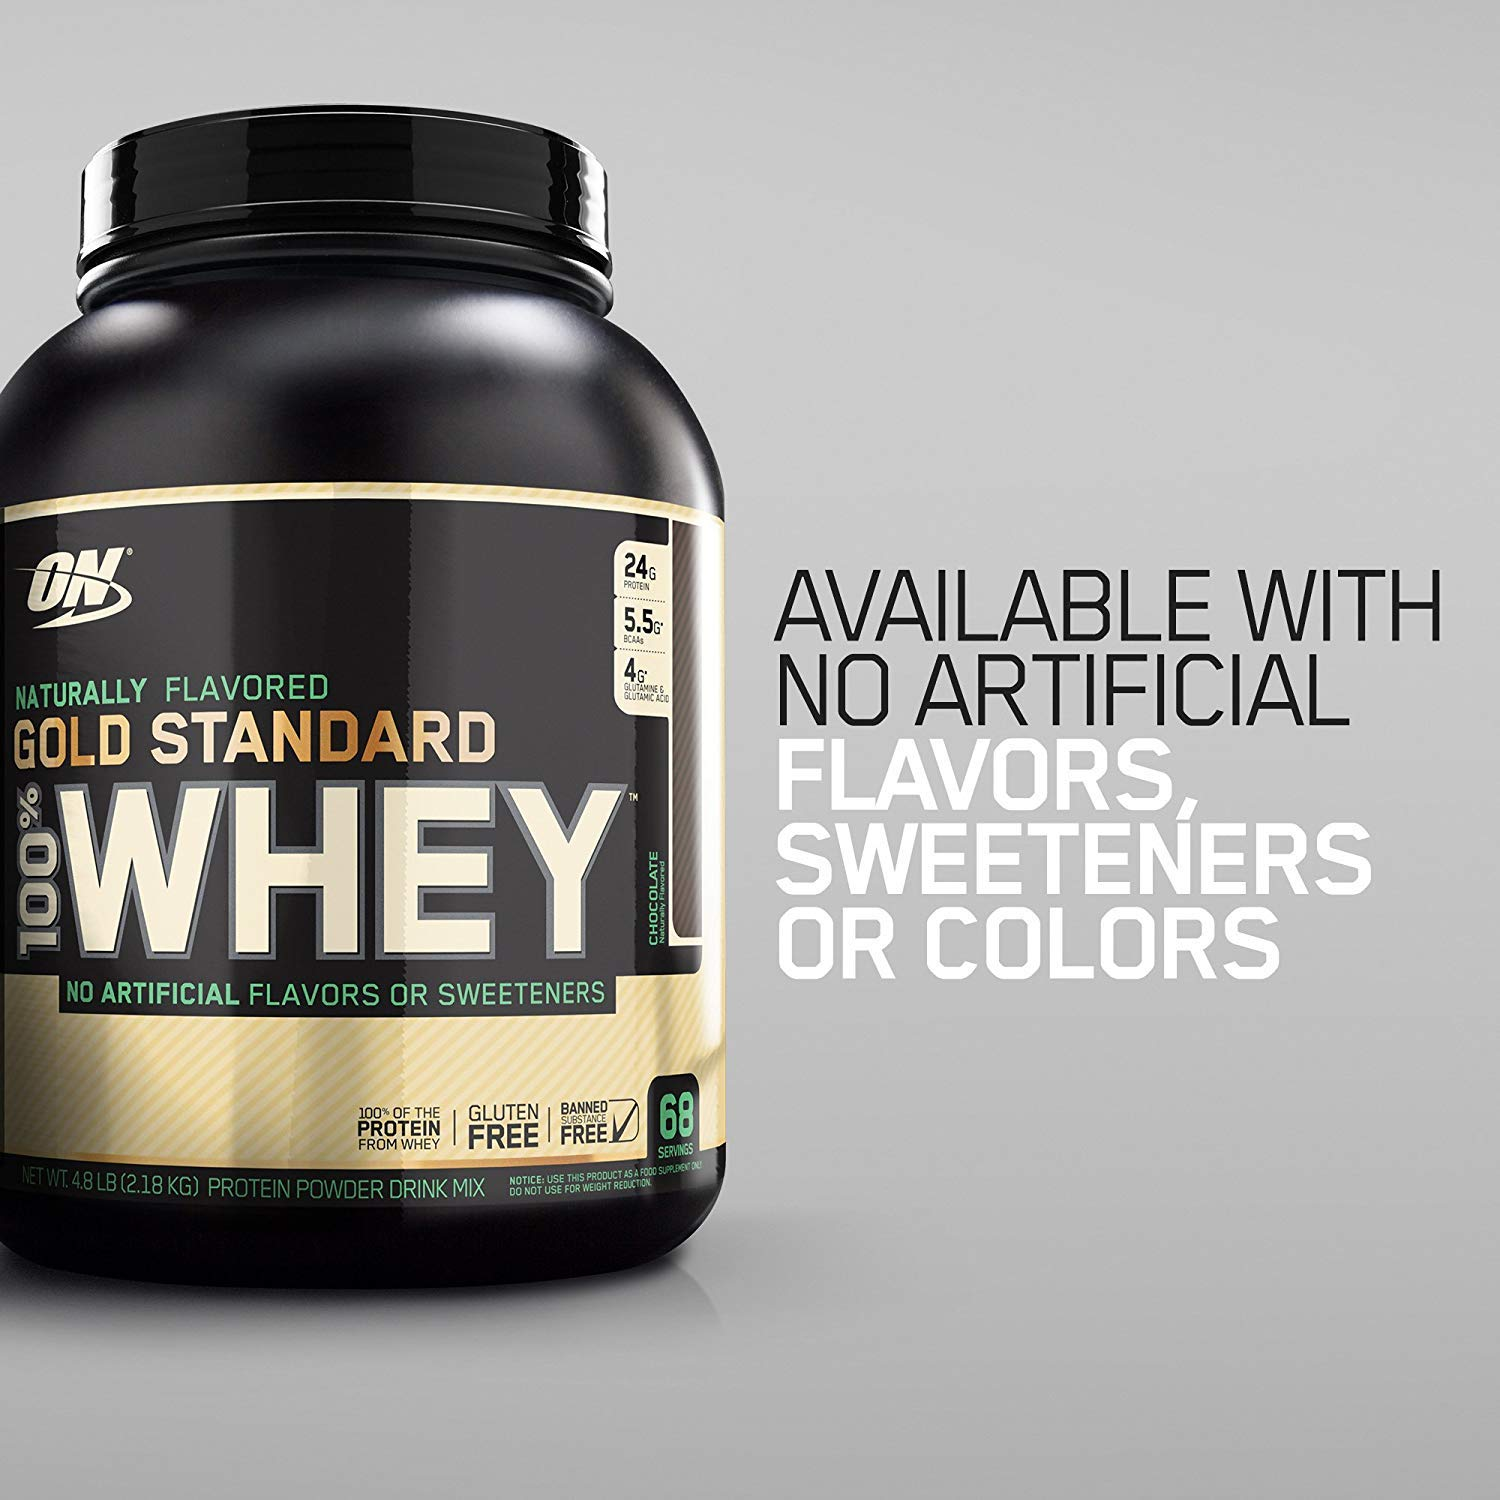 OPTIMUM NUTRITION GOLD STANDARD 100% Whey Protein Powder, Naturally Flavored, 4.8 Pound by Optimum Nutrition (Image #4)